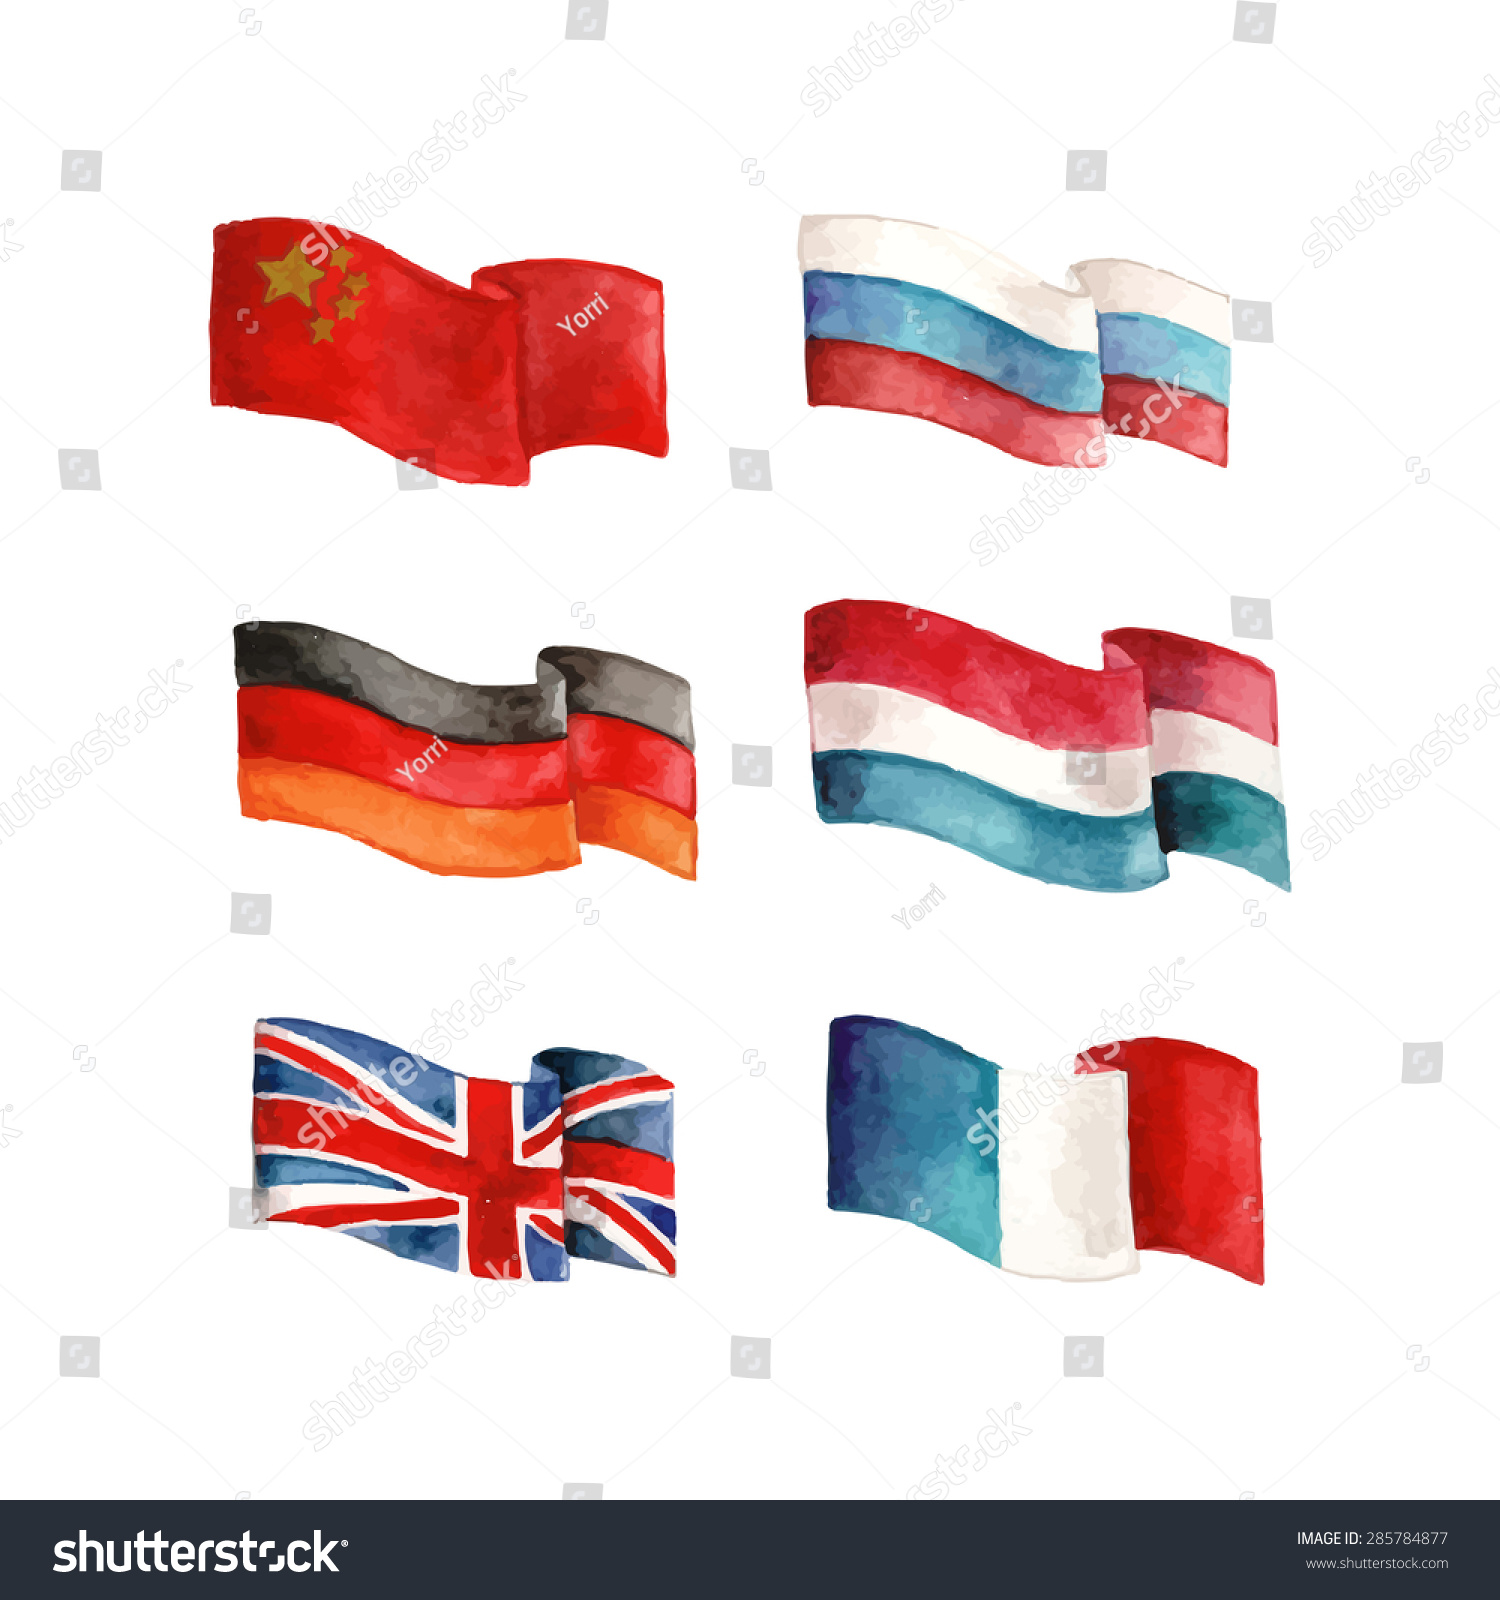 russia germany china which country is Germany when traveling to germany it is important to know that the country's constitution prohibits racial discrimination in general, but there is basicall.